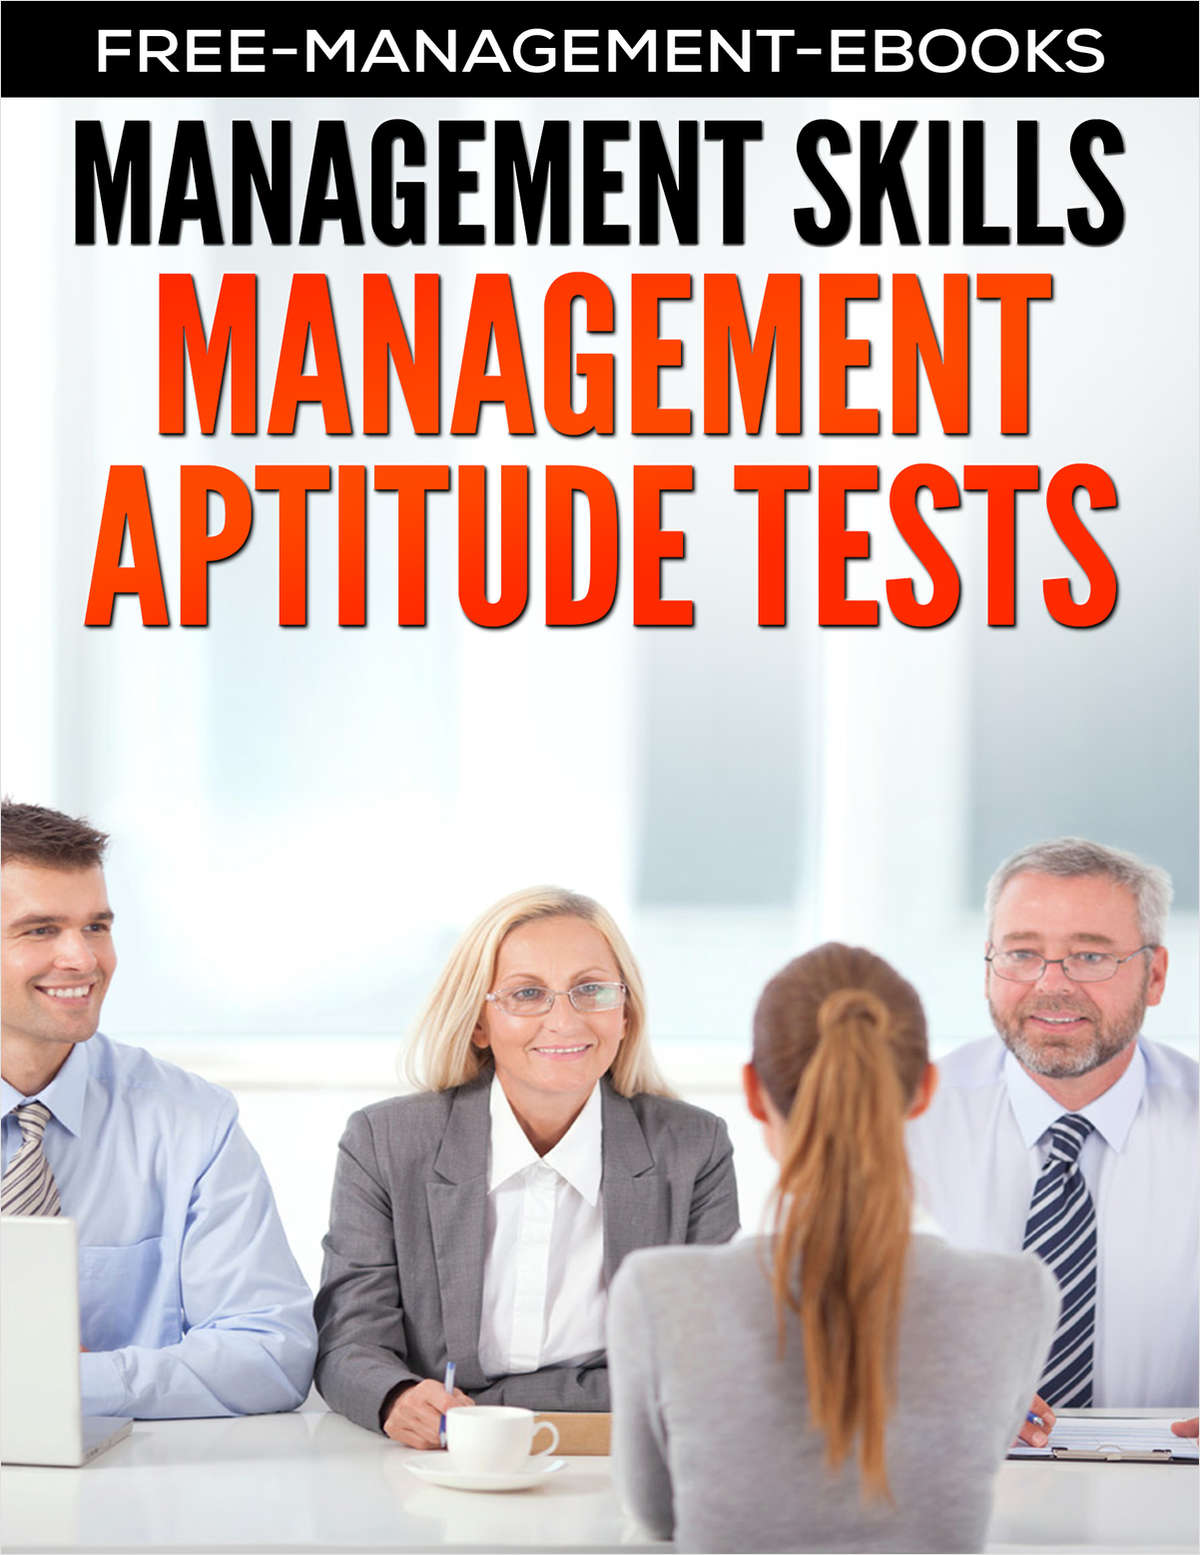 Management Aptitude Tests - Developing Your Management Skills